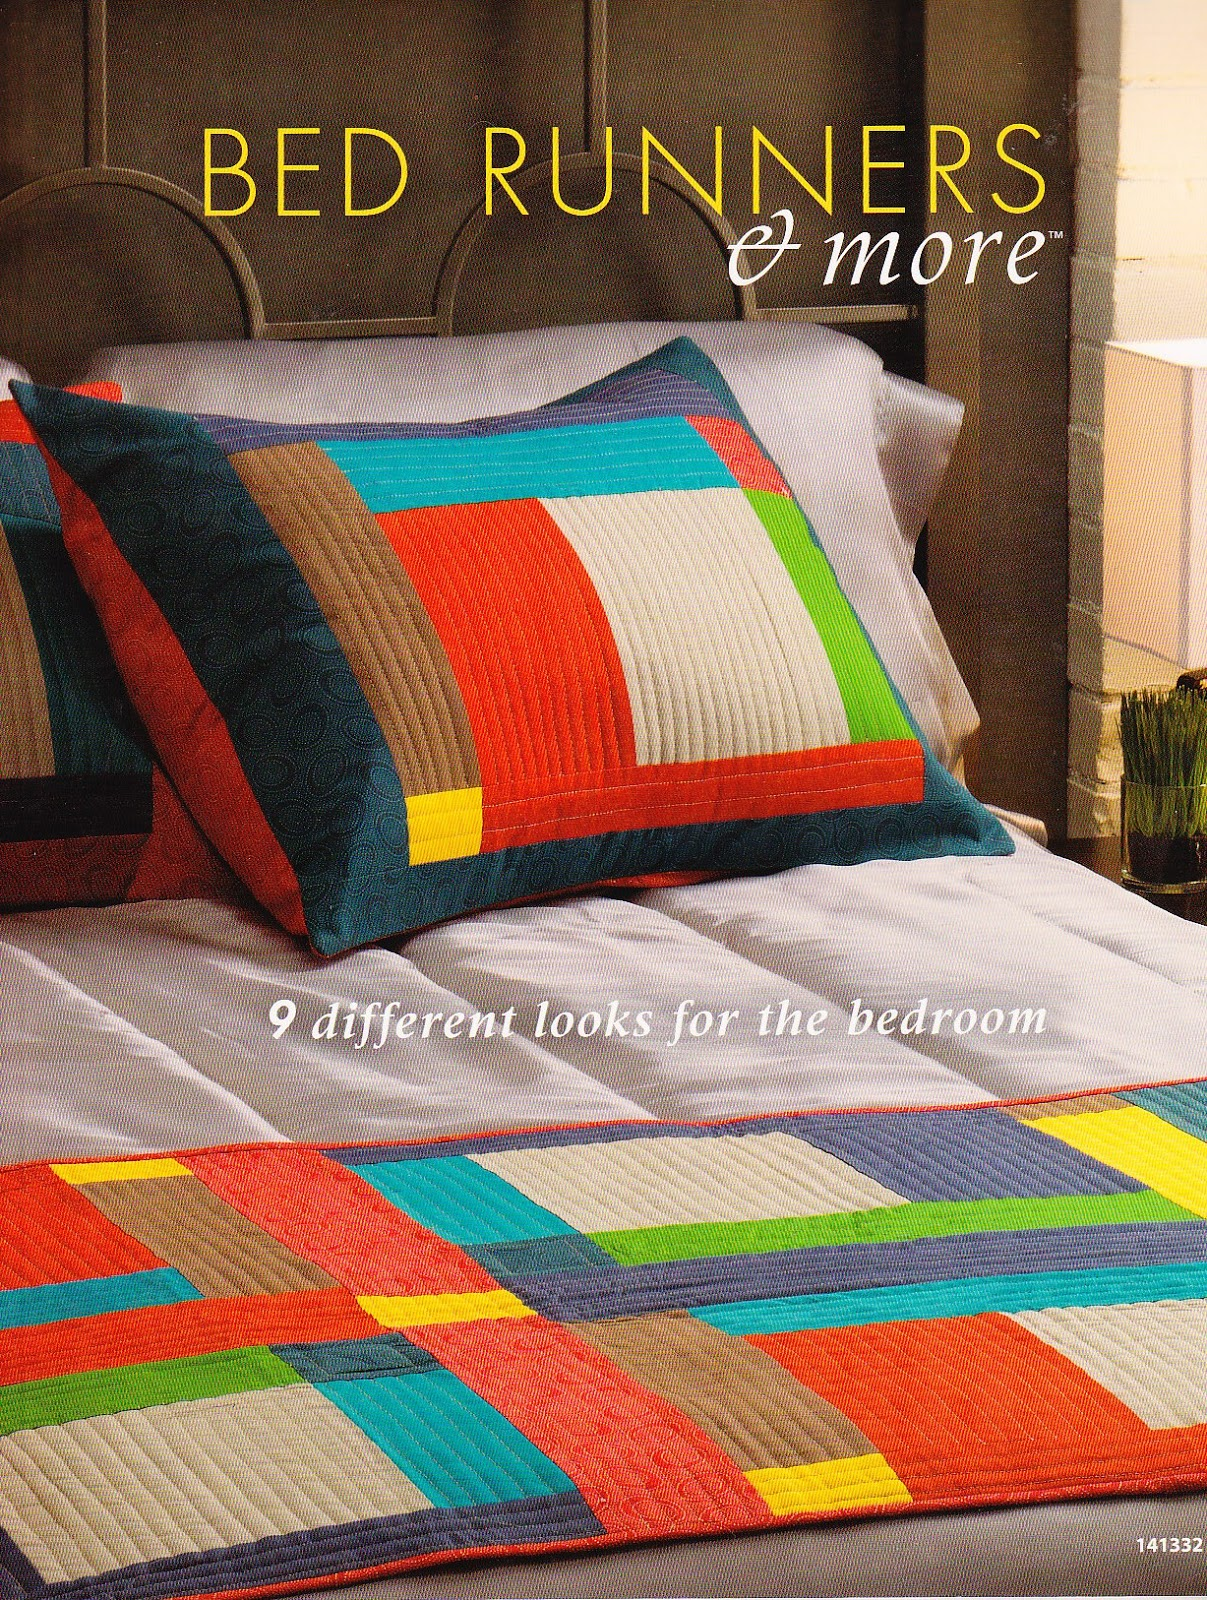 Li\'l Bloke\'s: Bed Runners... and more